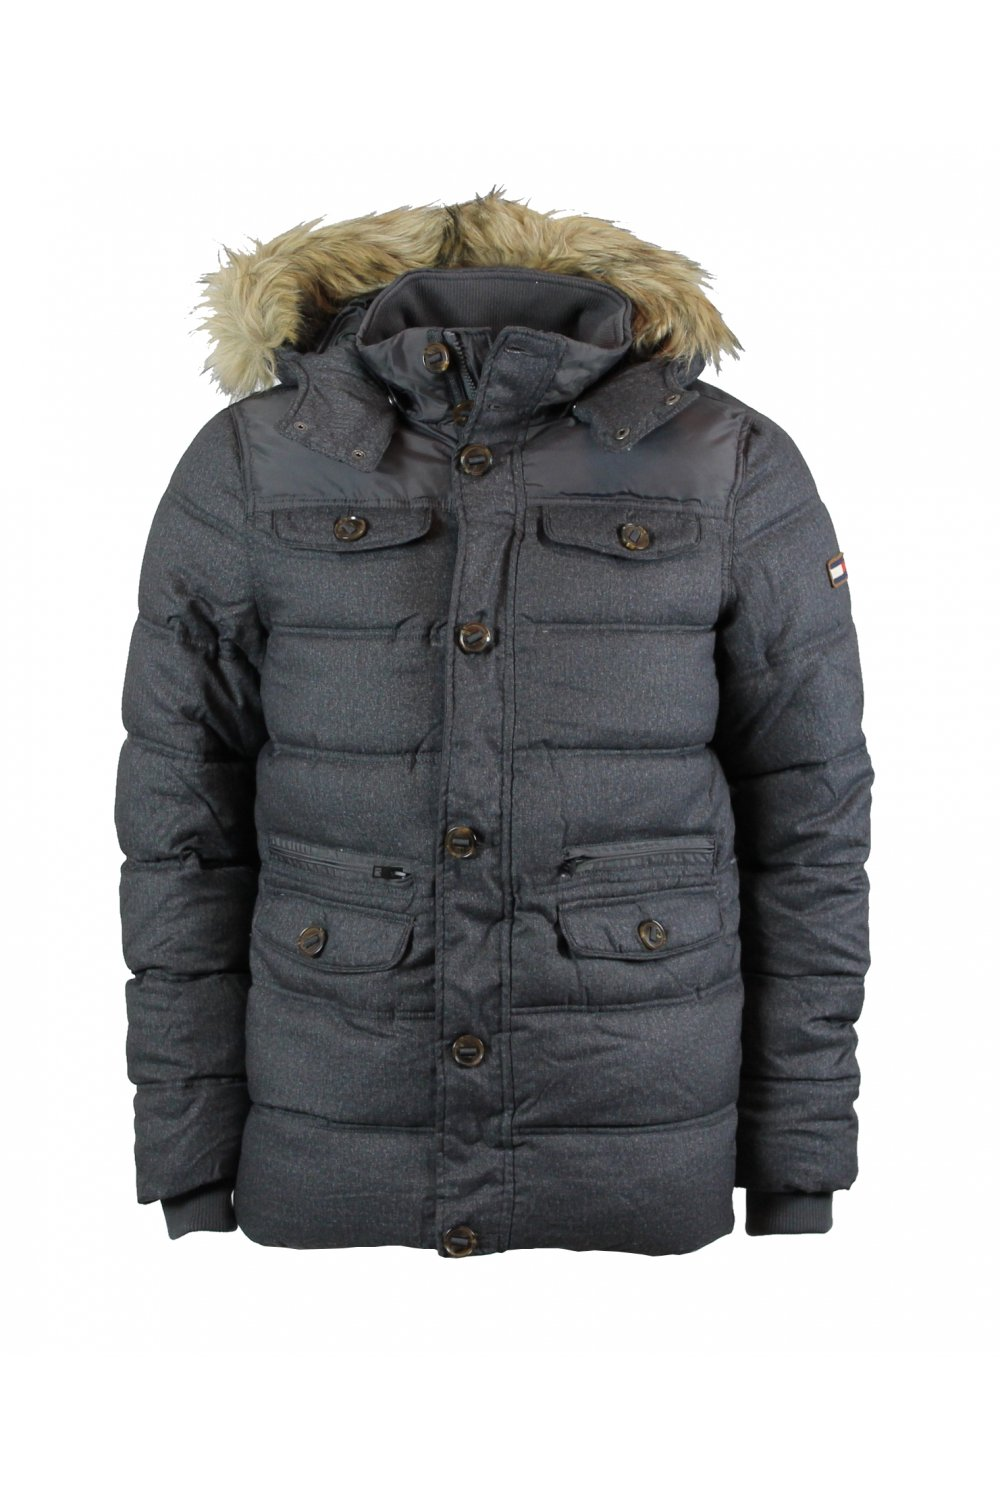 hilfiger denim johnny hd parka jacket tommy black ebay. Black Bedroom Furniture Sets. Home Design Ideas